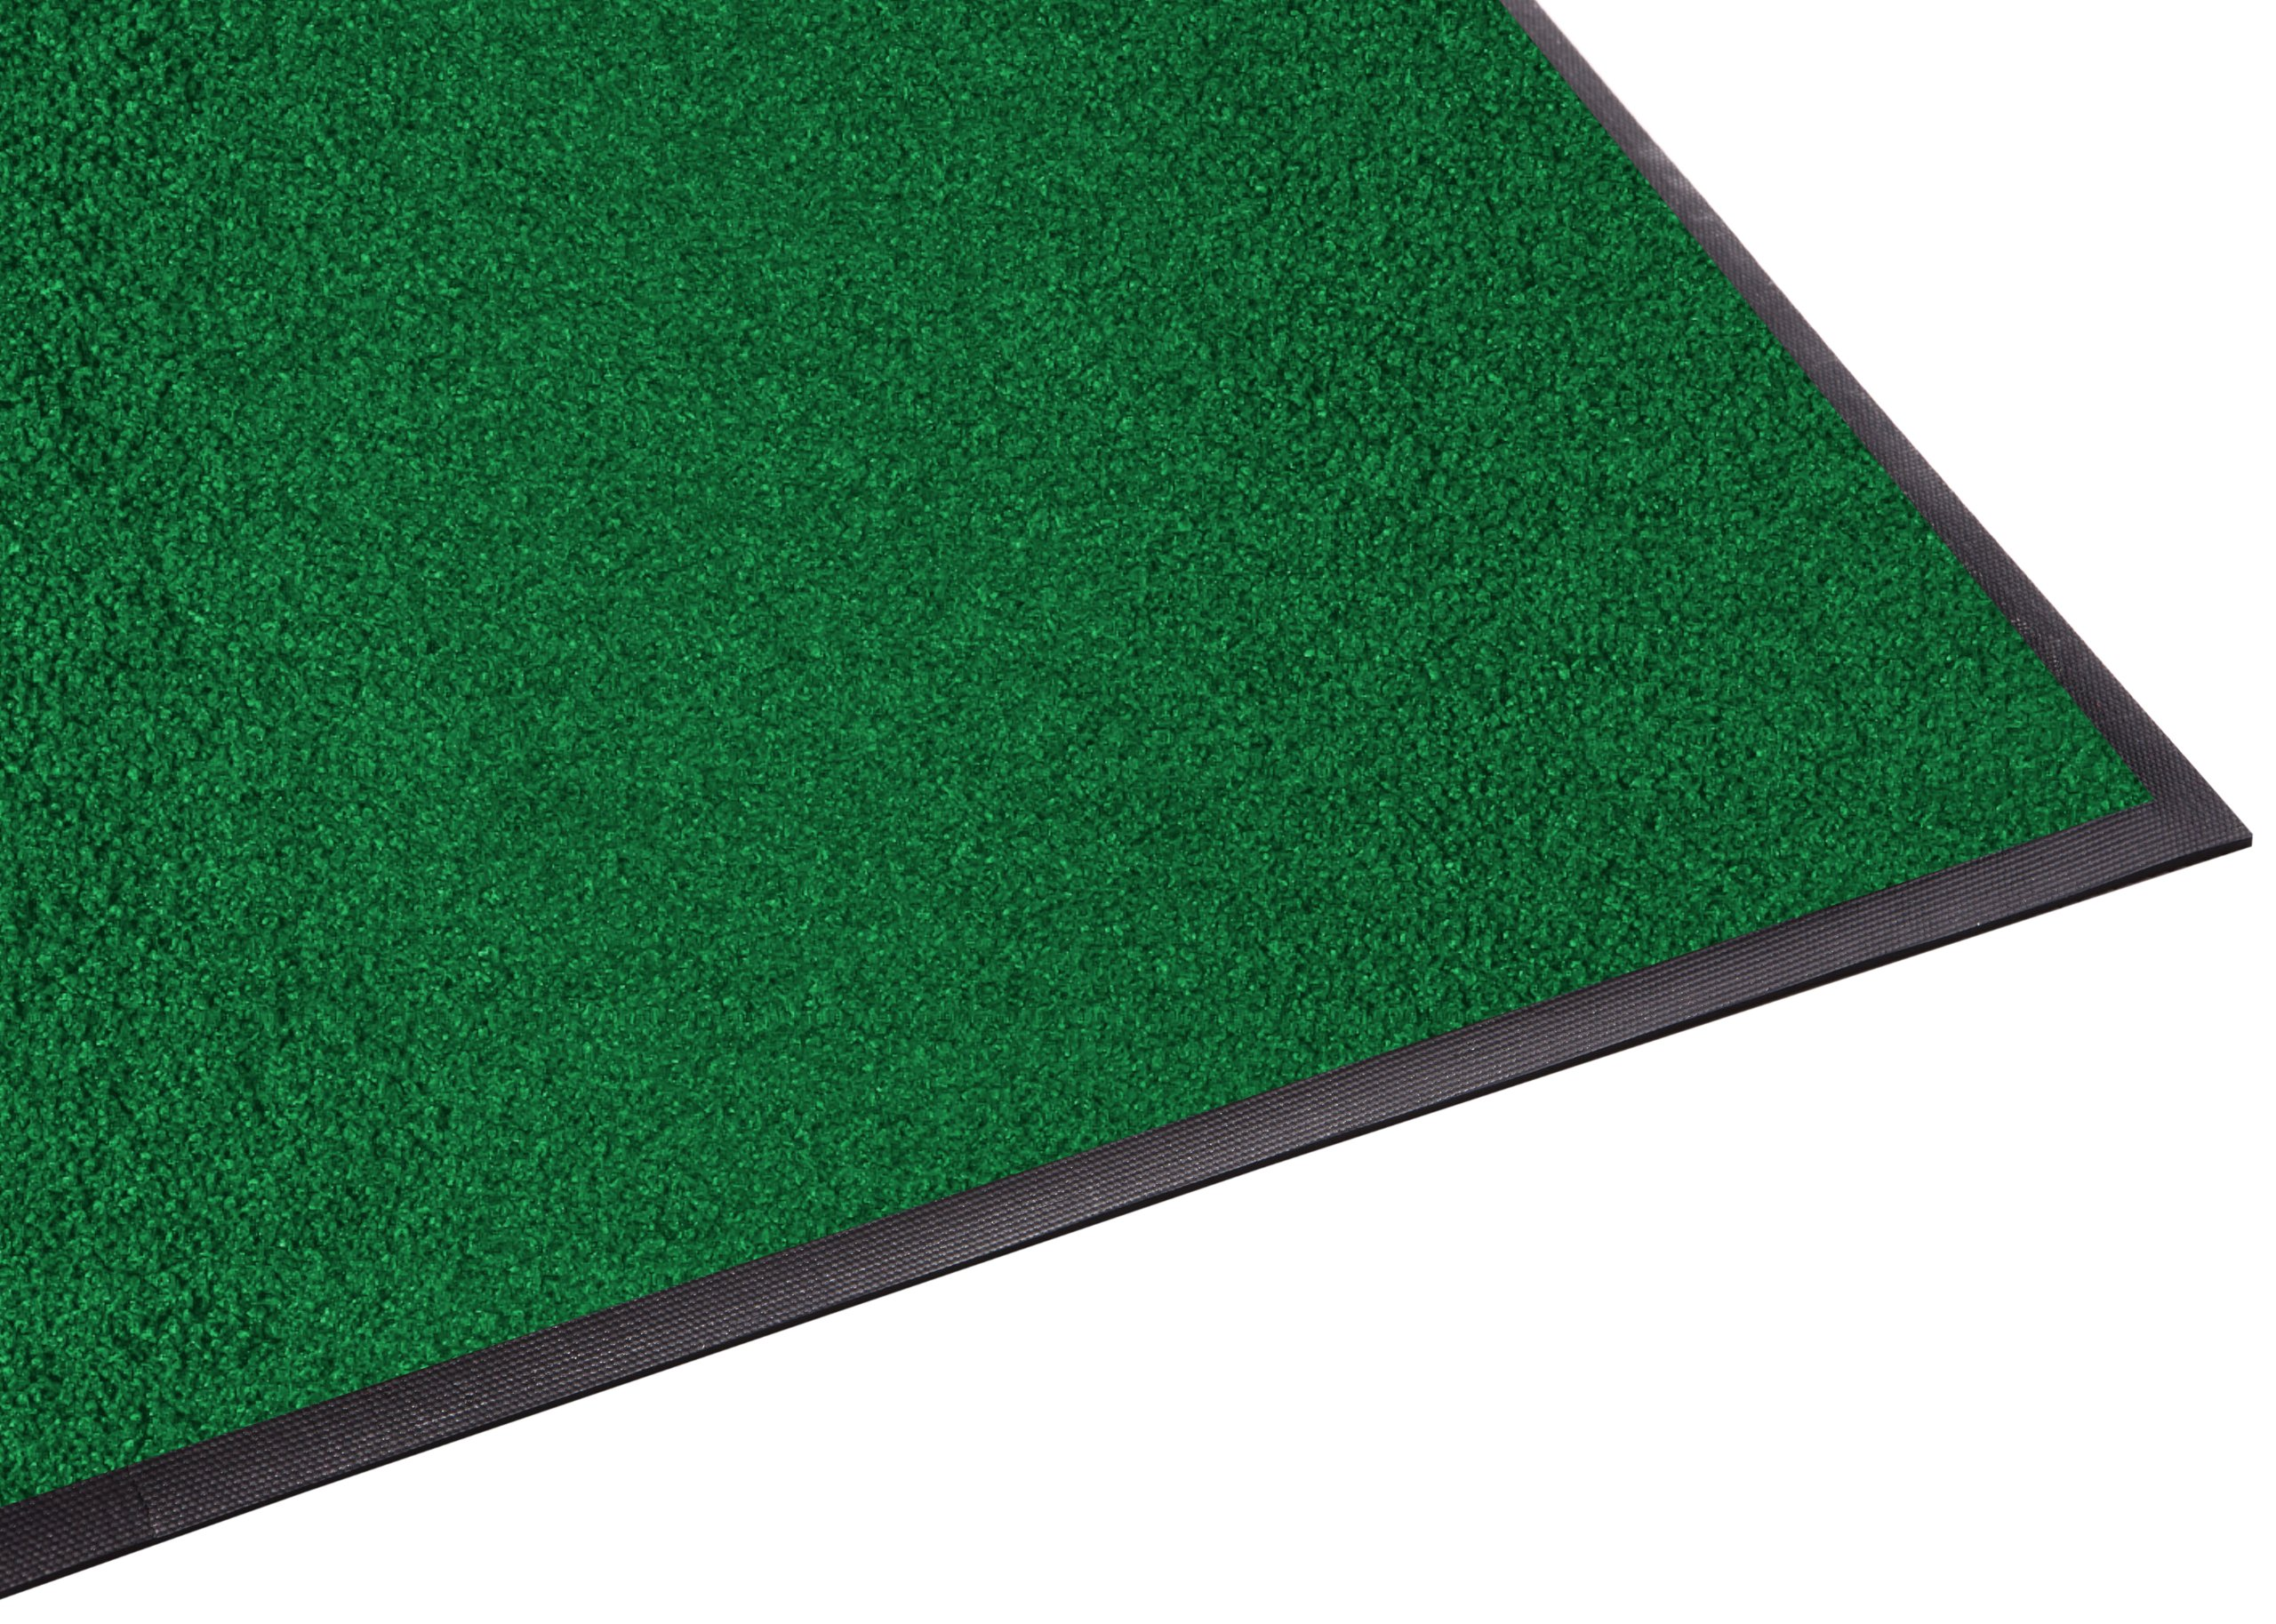 Guardian Platinum Series Indoor Wiper Floor Mat, Rubber with Nylon Carpet, 2'x2', Green by Guardian